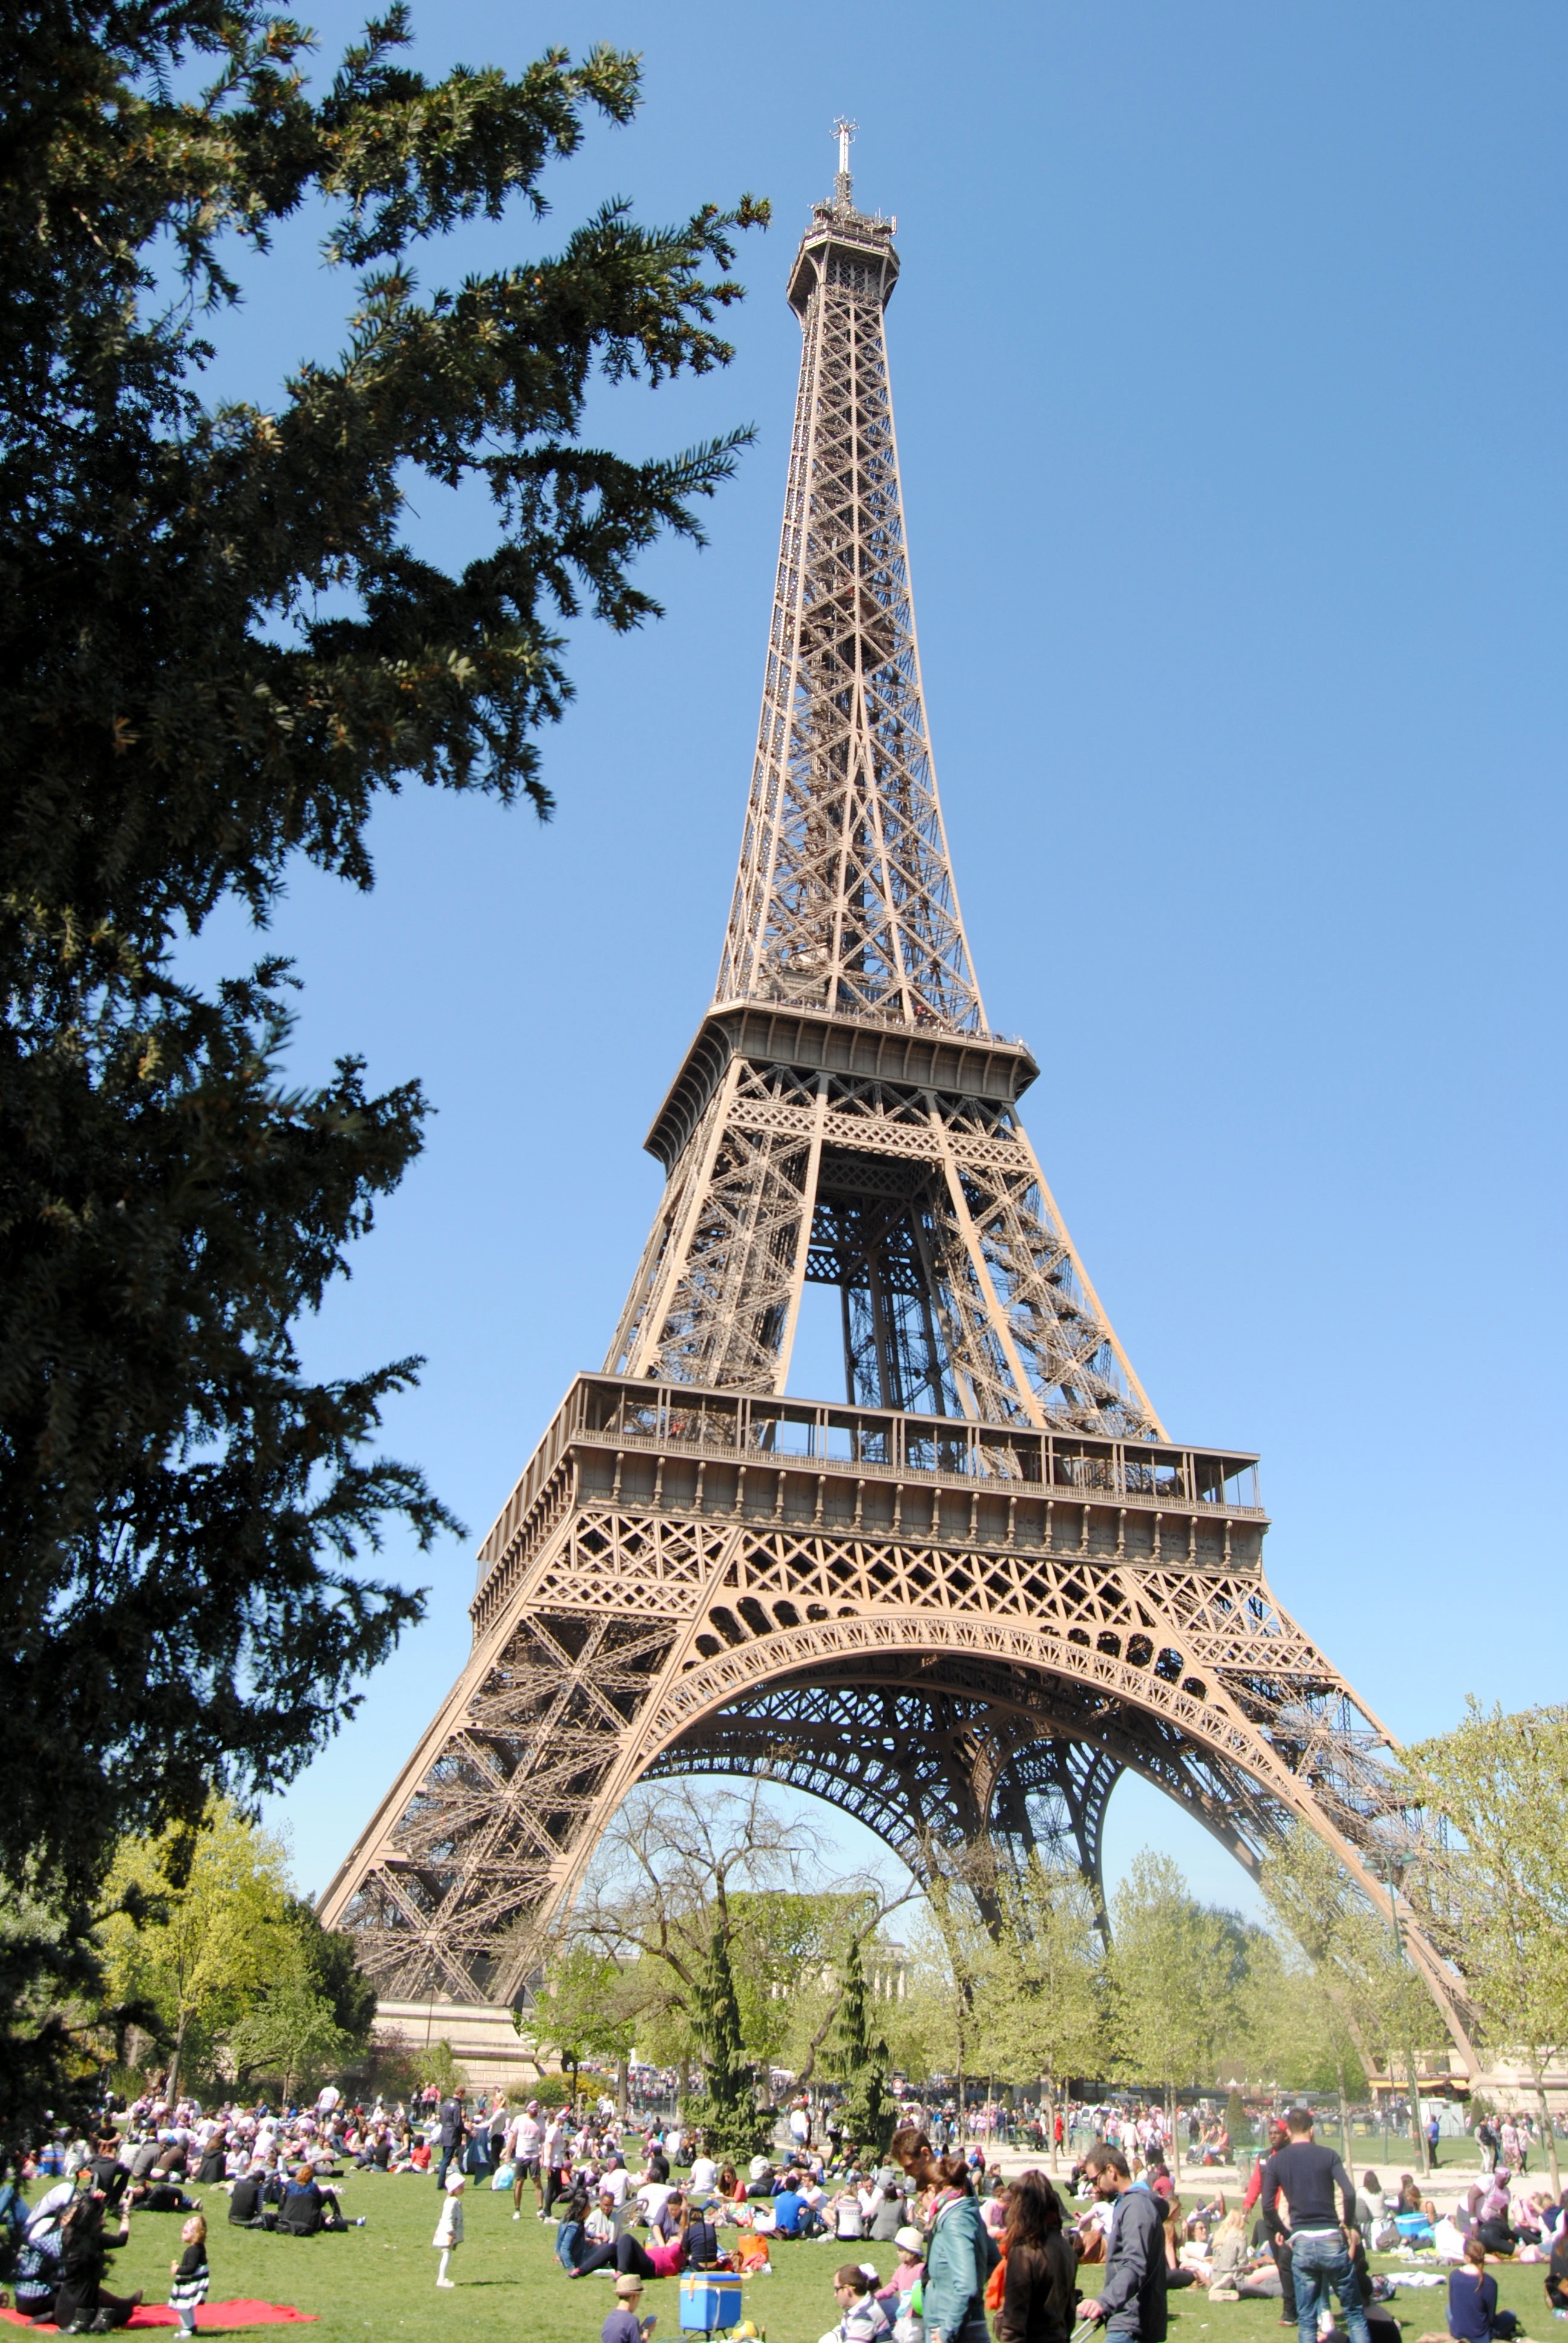 The Eiffel Tower in all its glory.